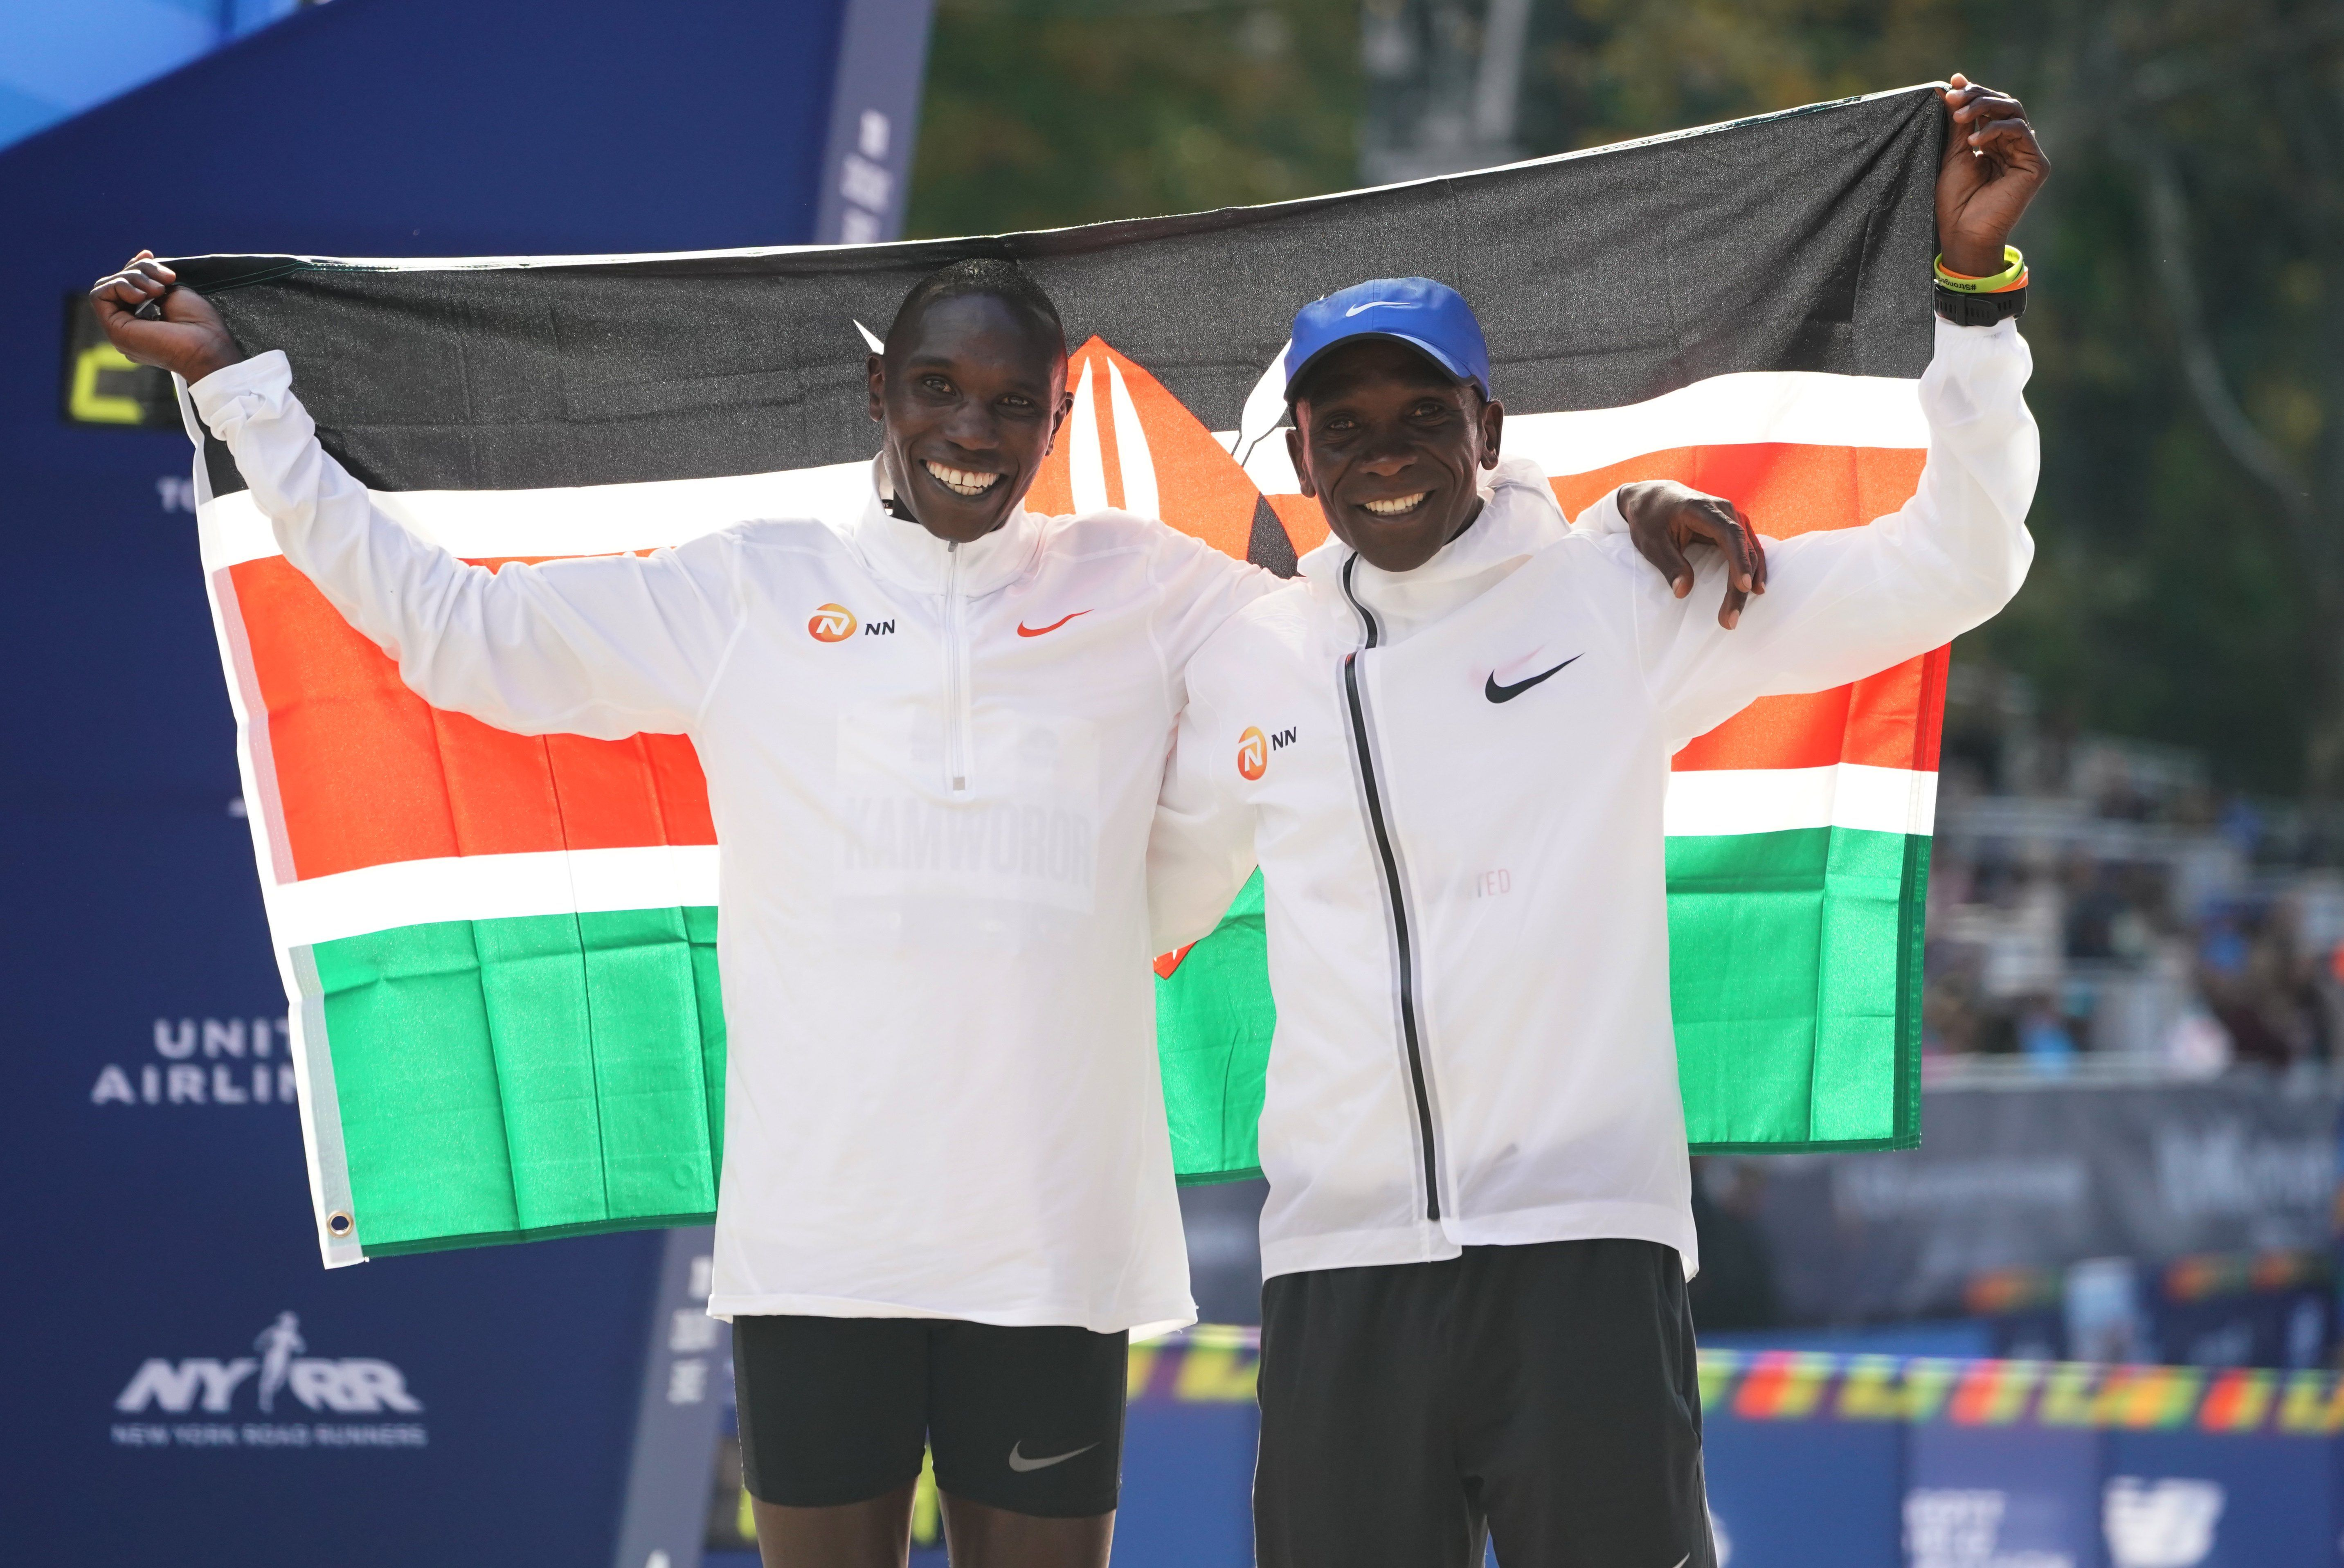 Kipchoge and Kamworor Talk Solo Training, Family Time, and the Perks of Virtual Racing